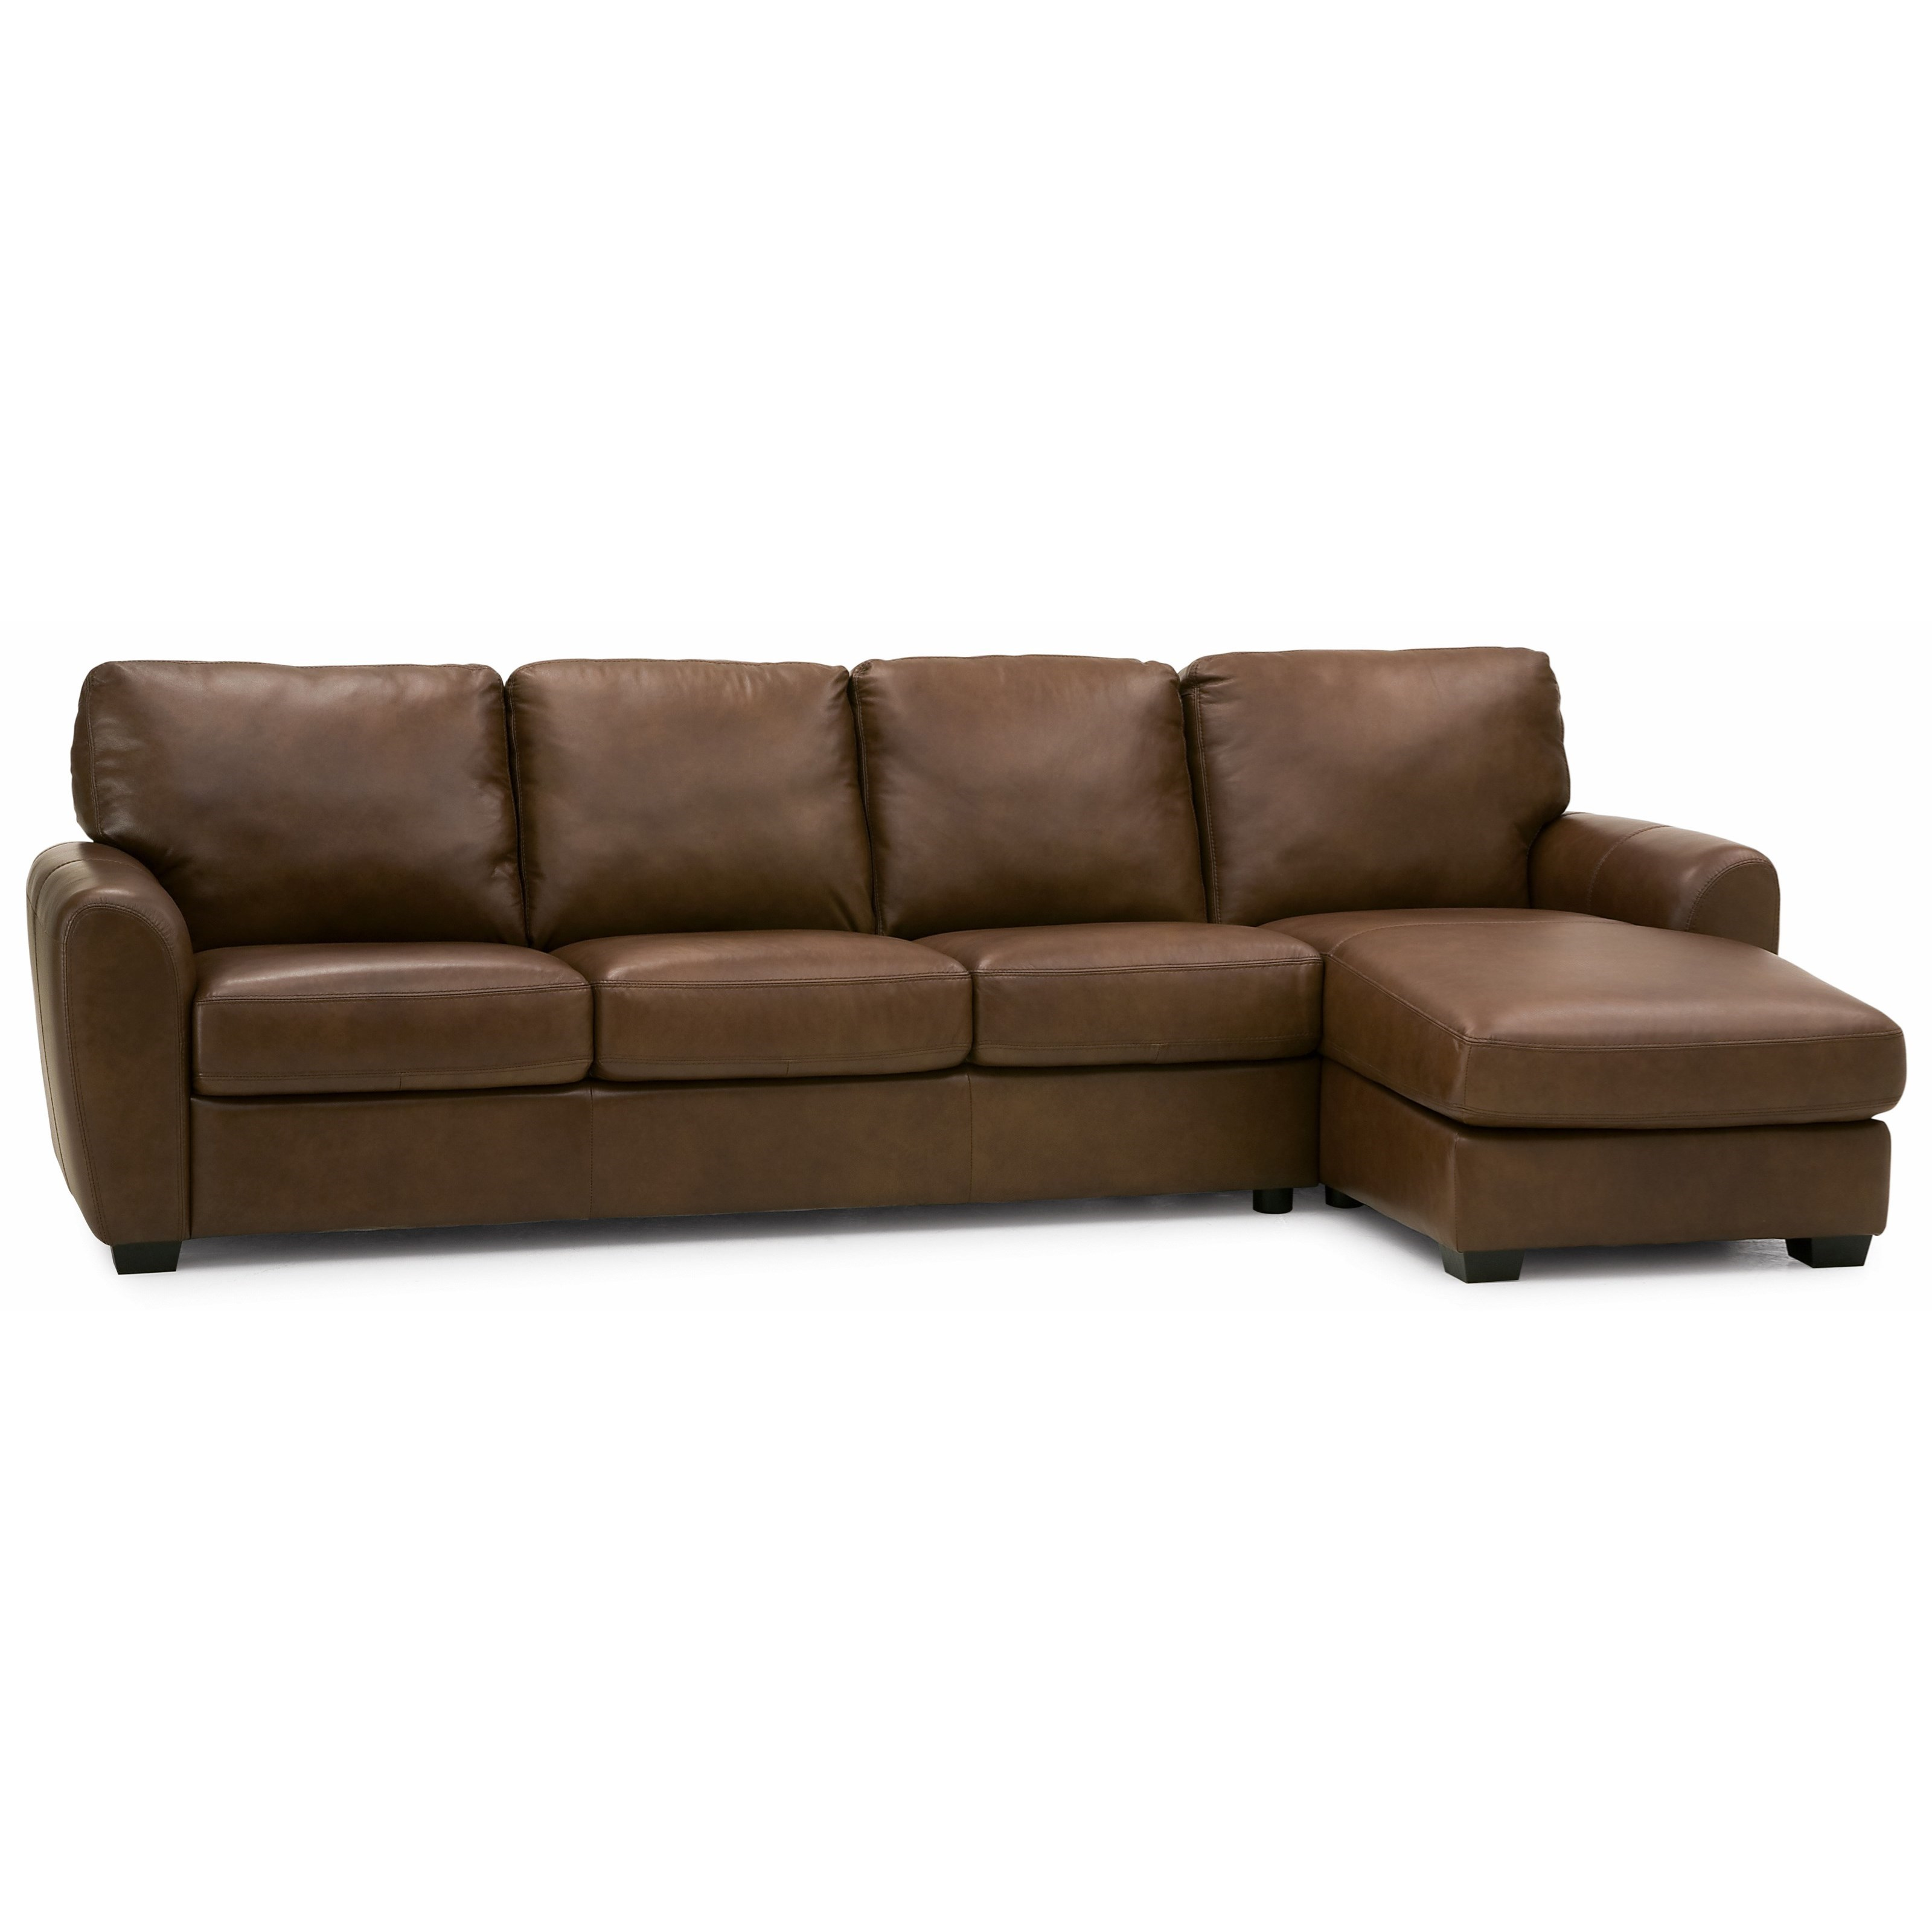 Palliser Leather Sofas: Palliser Connecticut Contemporary Sectional Sofa With RHF